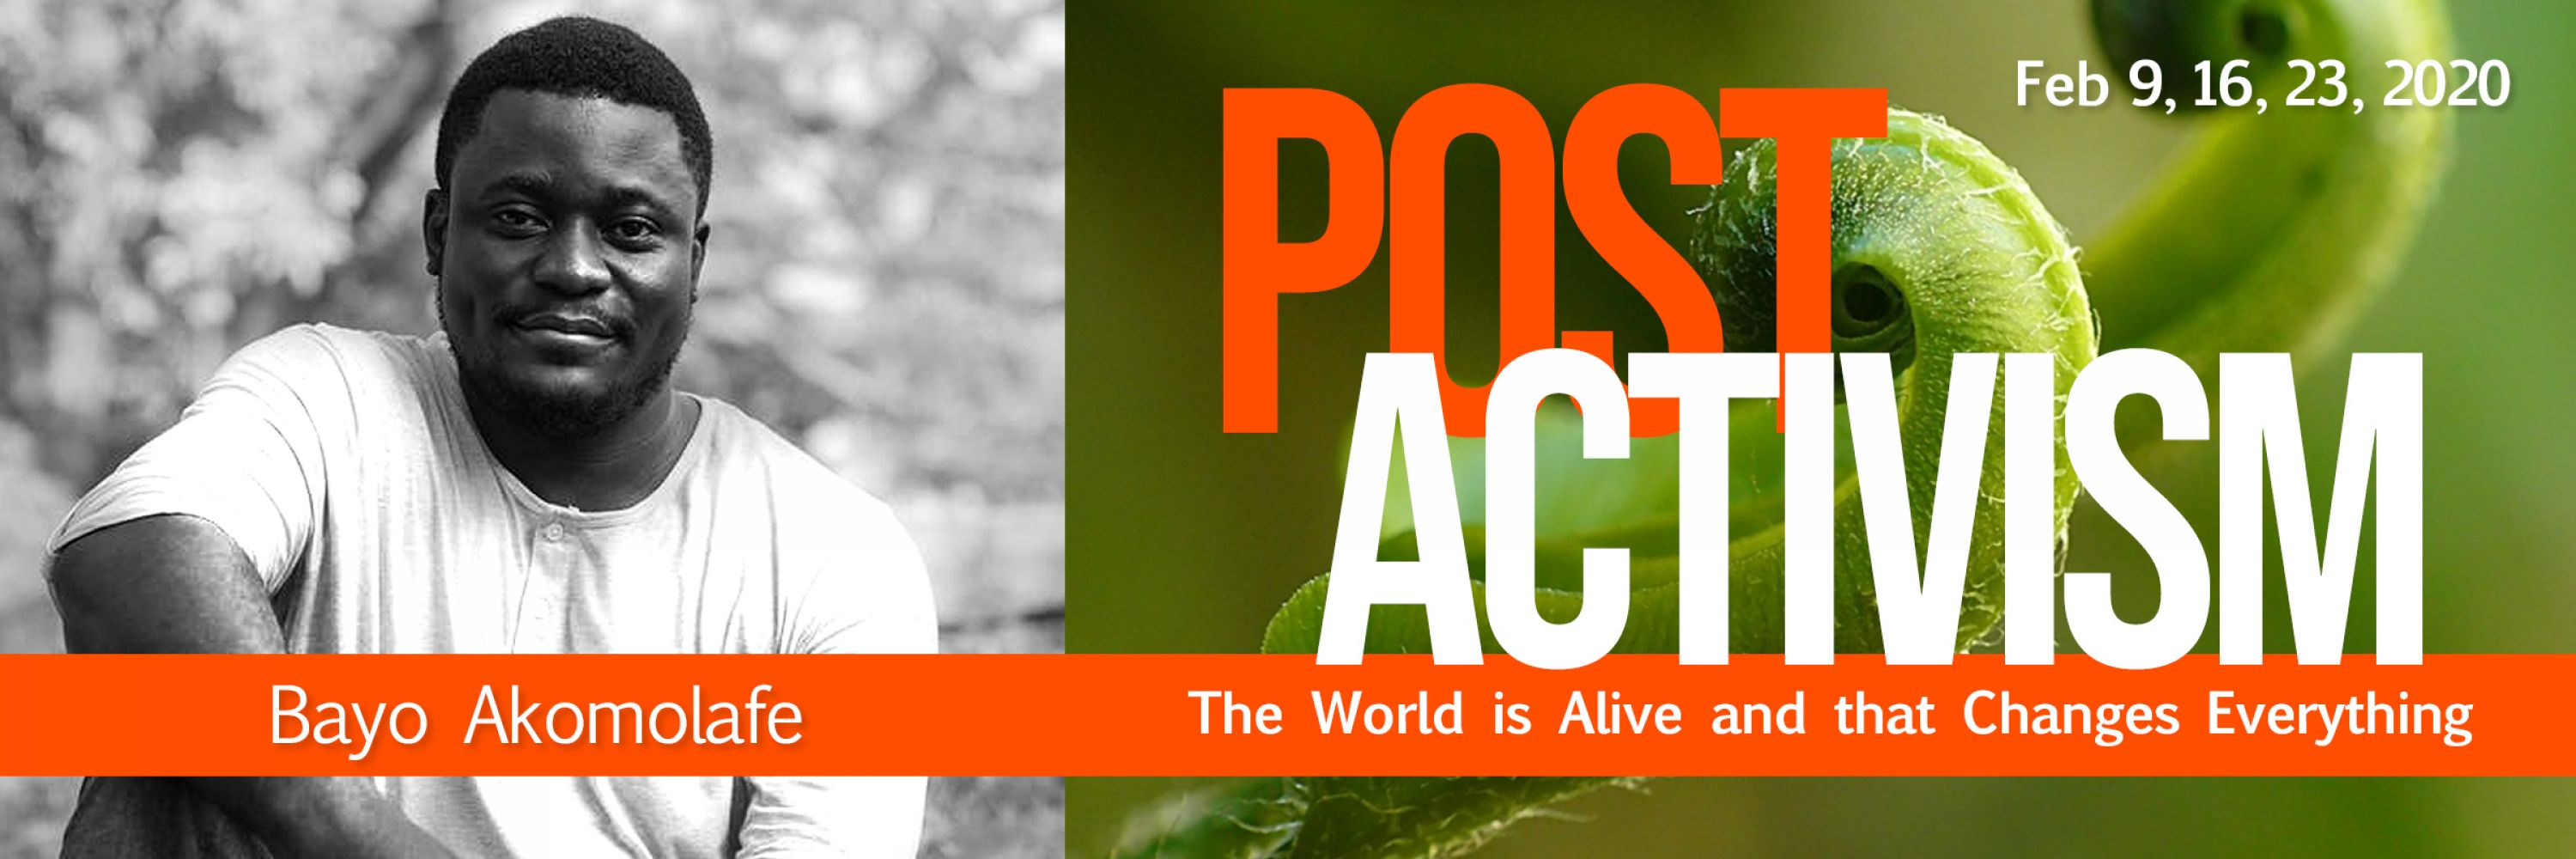 Postactivism: The World is Alive and that Changes Everything